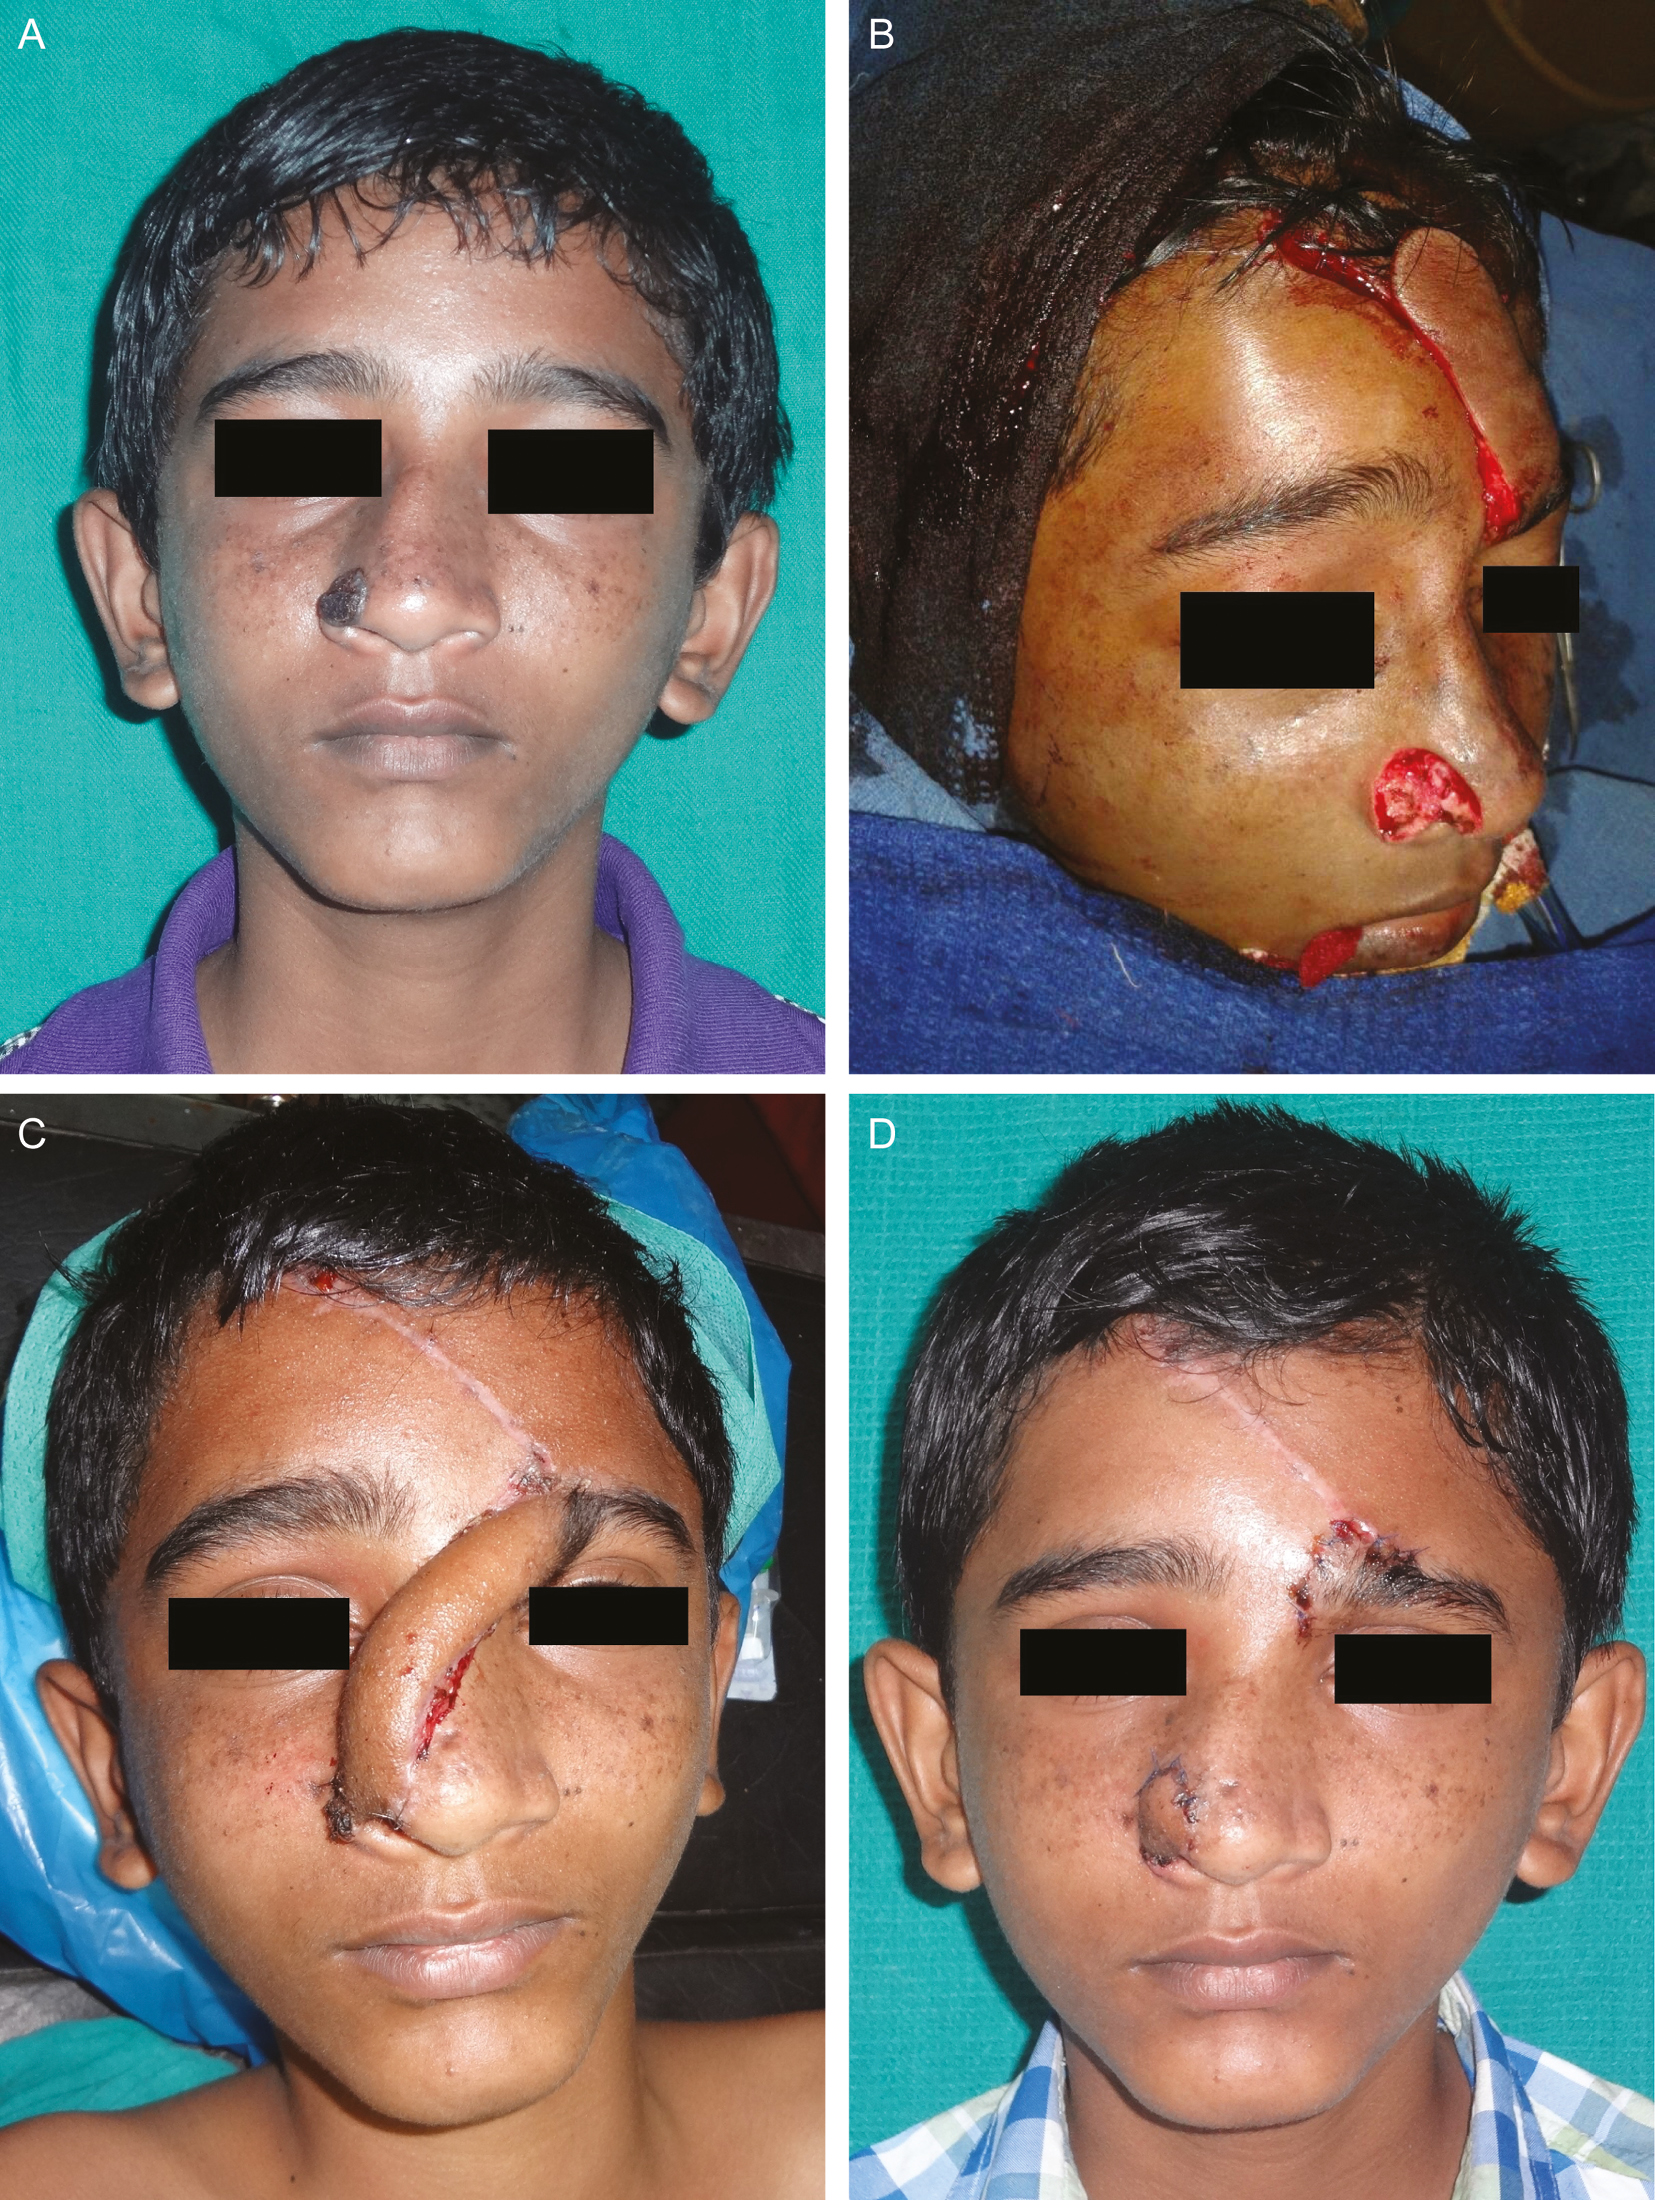 Figure 5: (A) BCC of nose. (B) Post-excision defect and elevation of paramedian forehead flap. (C) Reconstruction using paramedian forehead flap. (D) Paramedian forehead flap reconstruction after division and inset